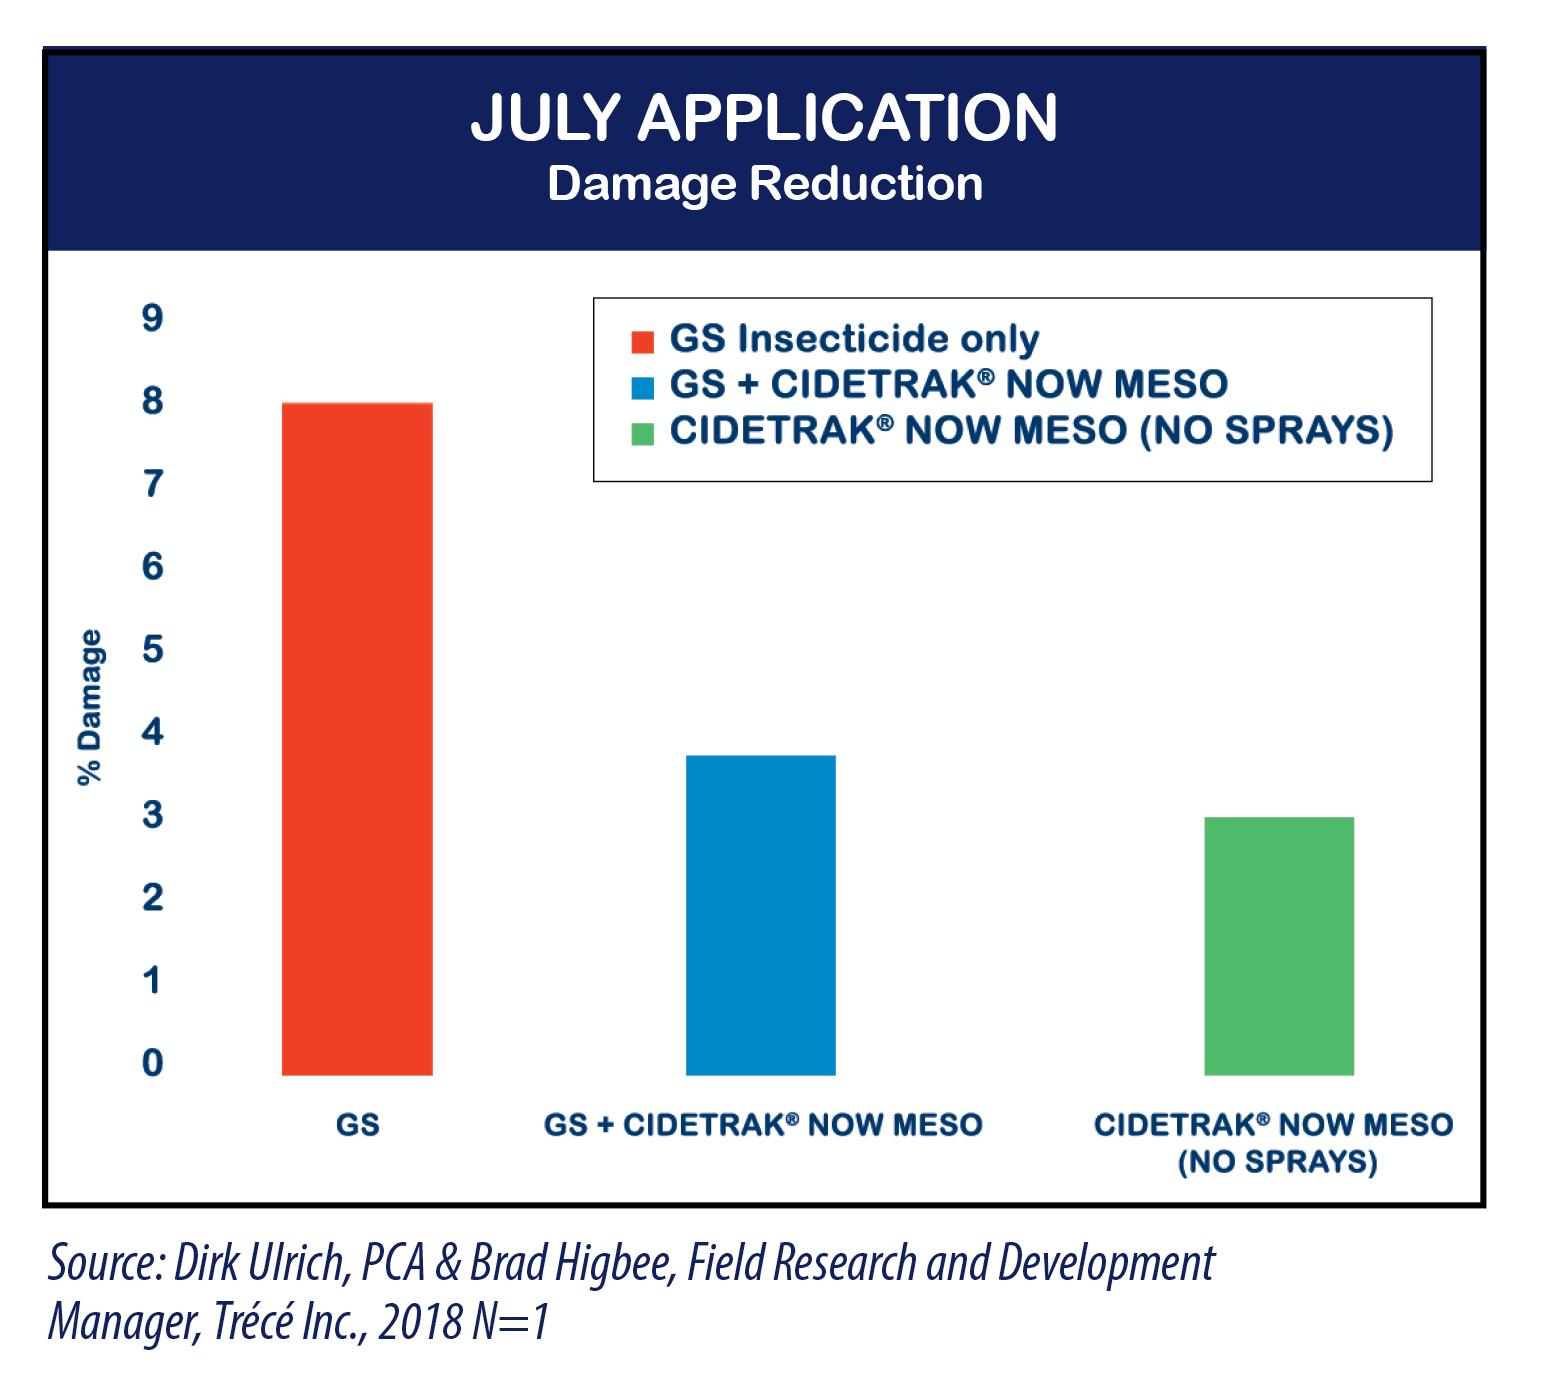 Chart July Application Showing Damage Reduction